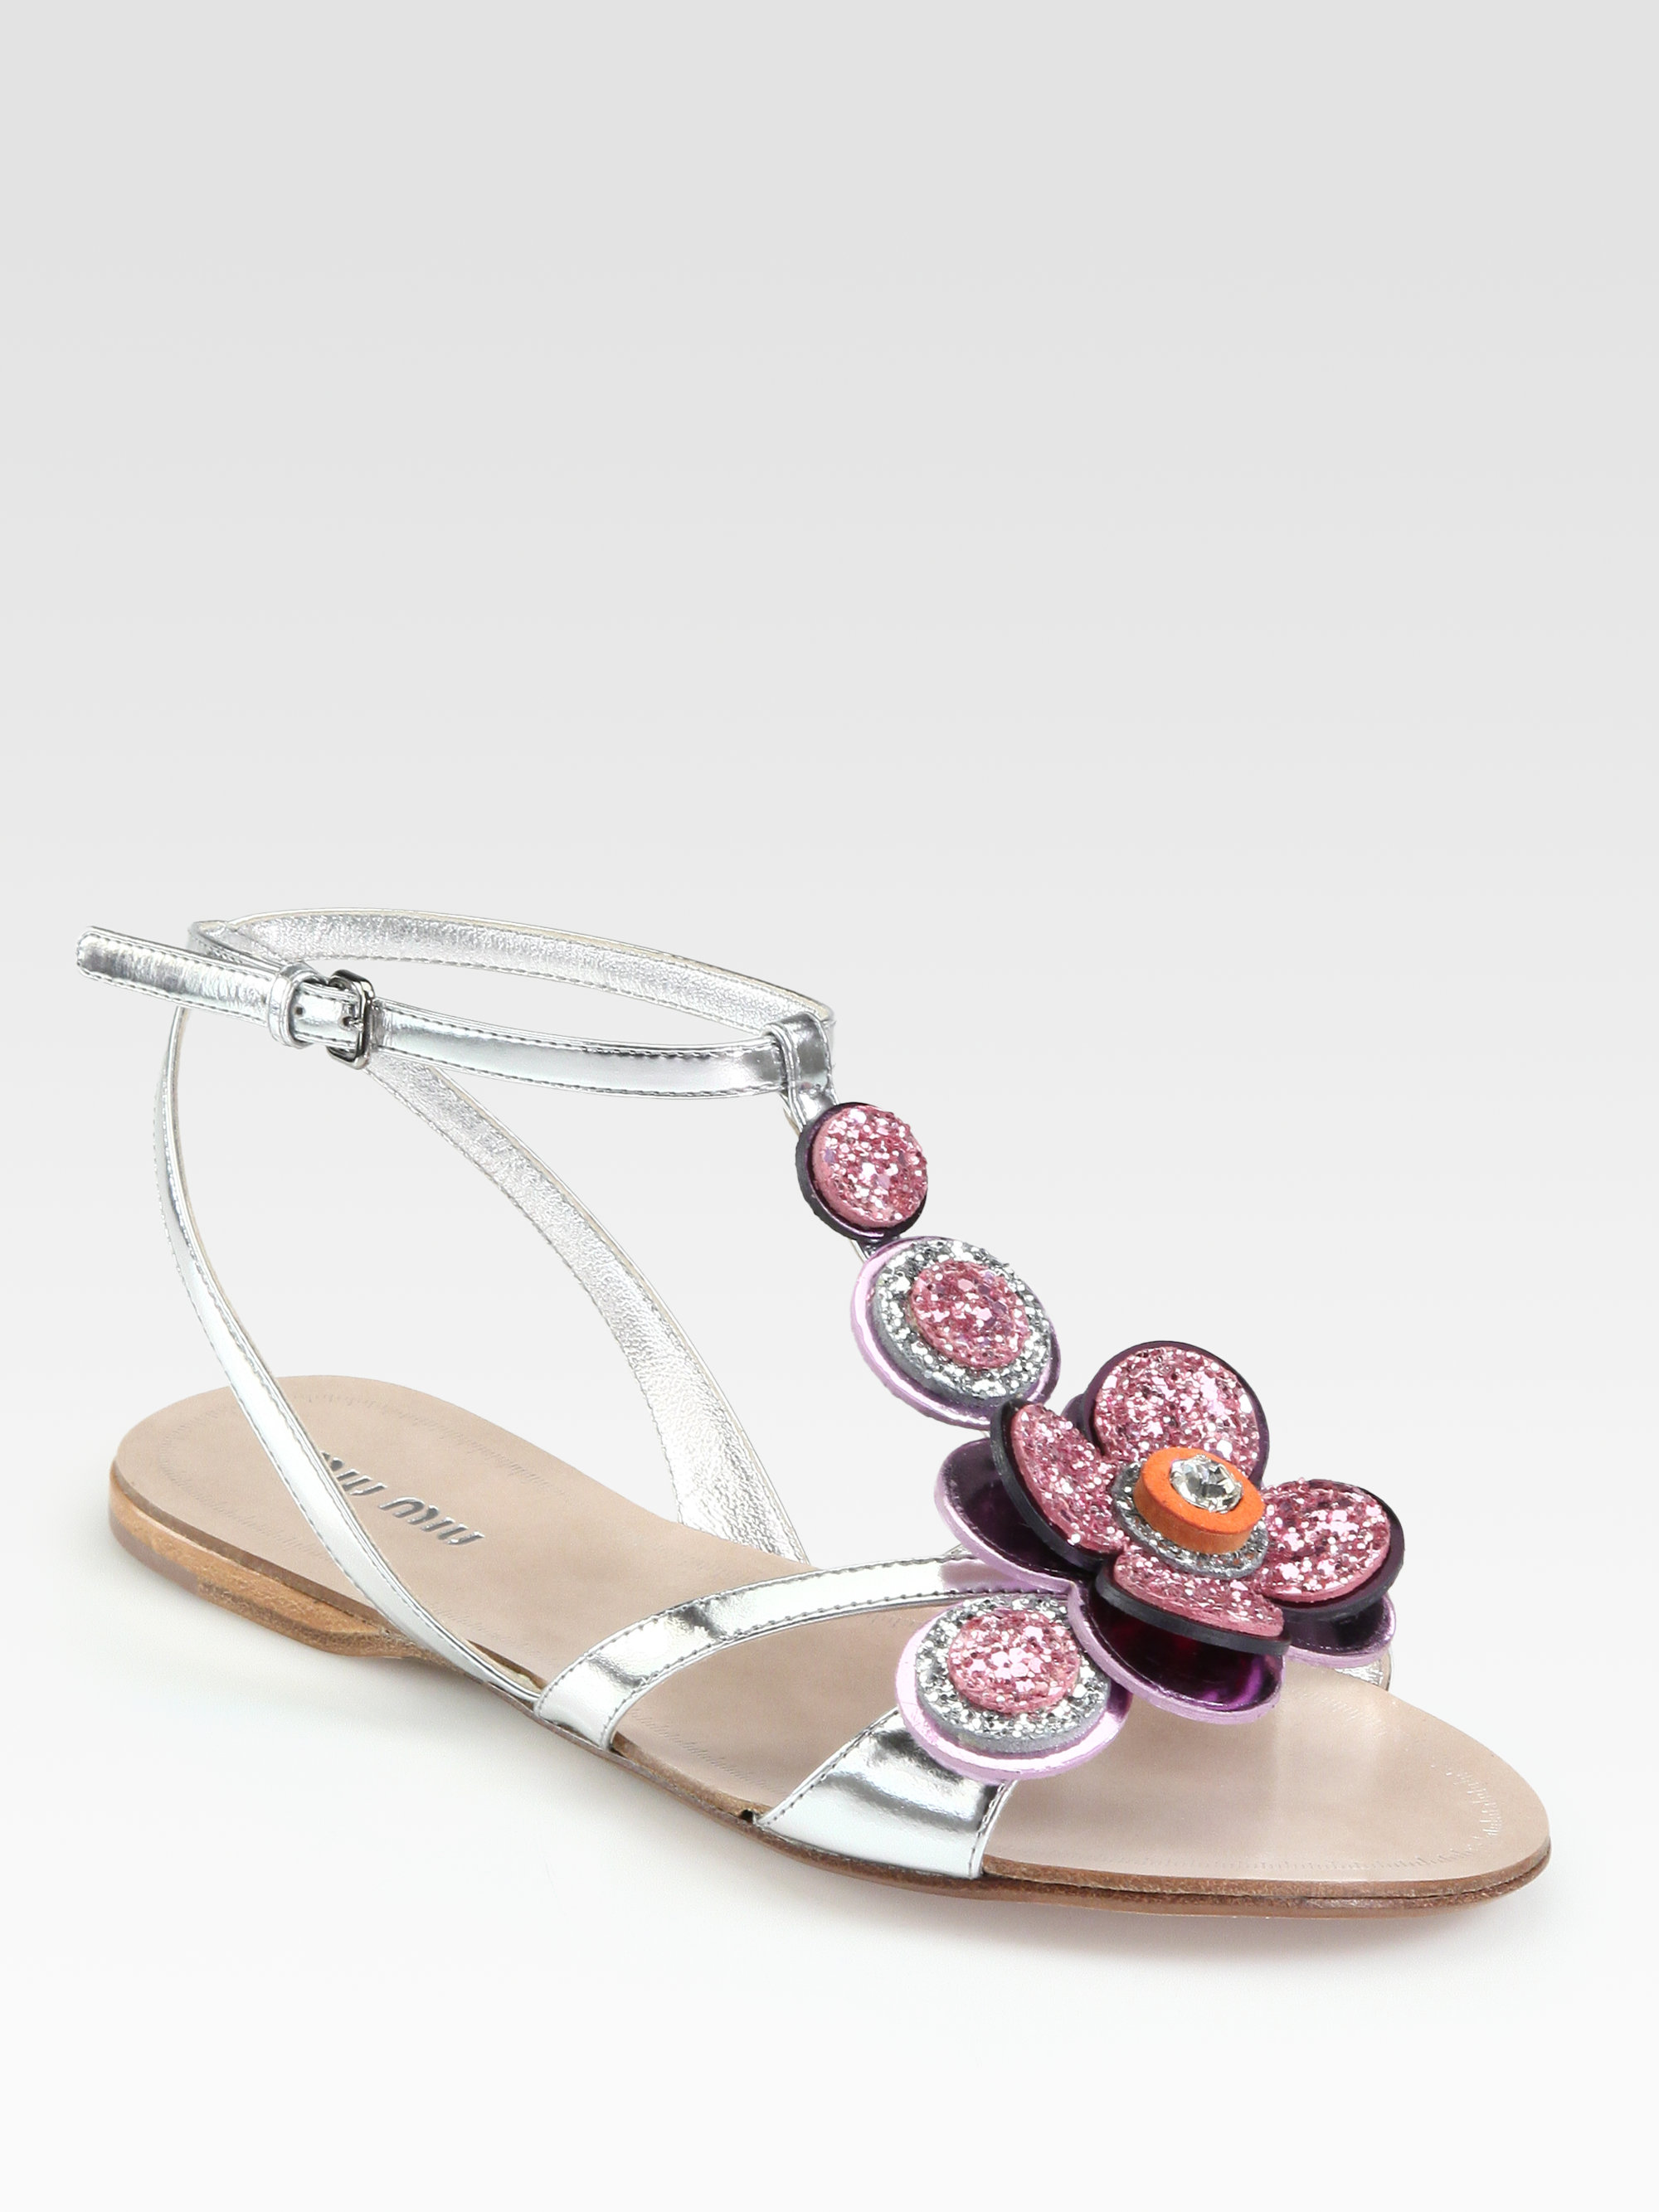 rhinestone embellished metallic sandals Miu Miu